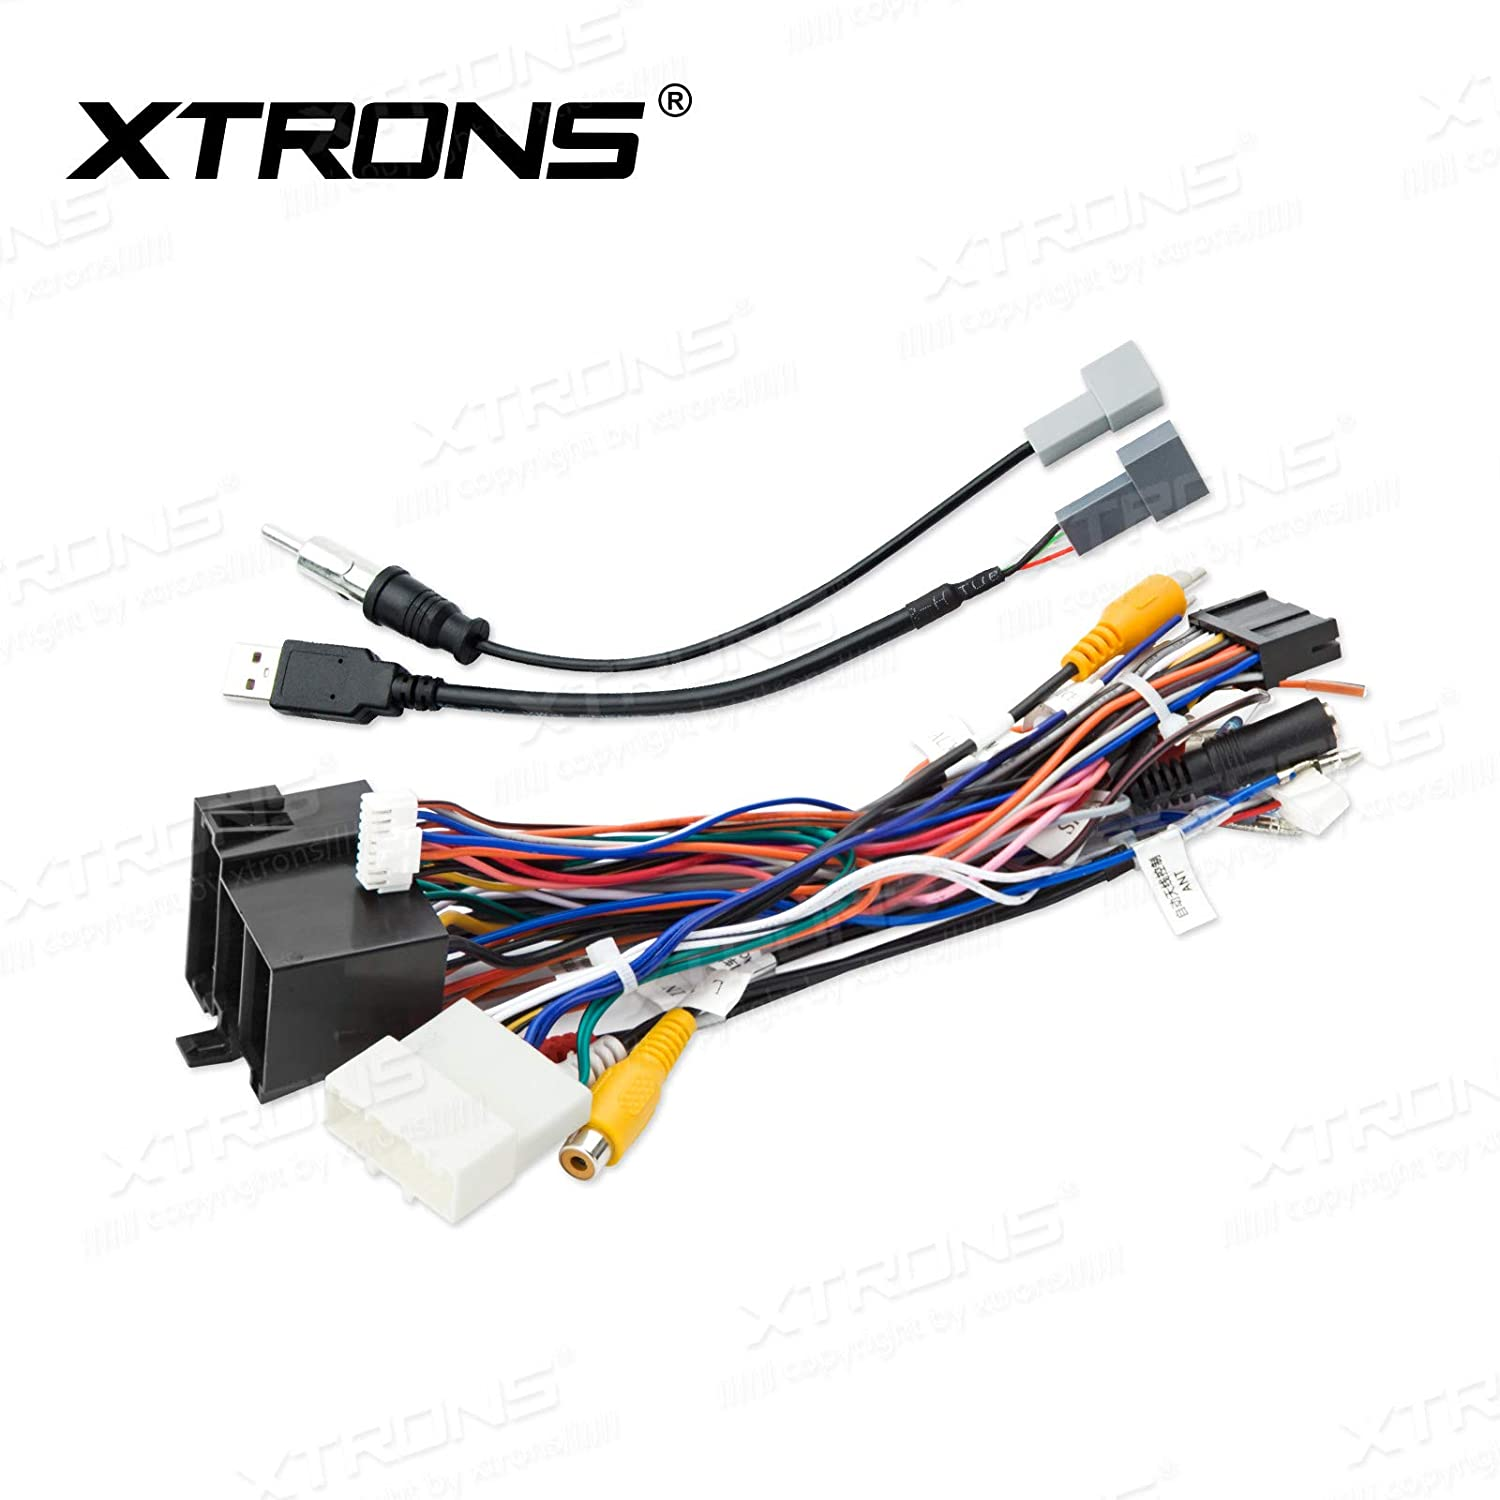 amazon com: xtrons car stereo radio iso wiring harness connector fits for  hyundai ix35 units: automotive